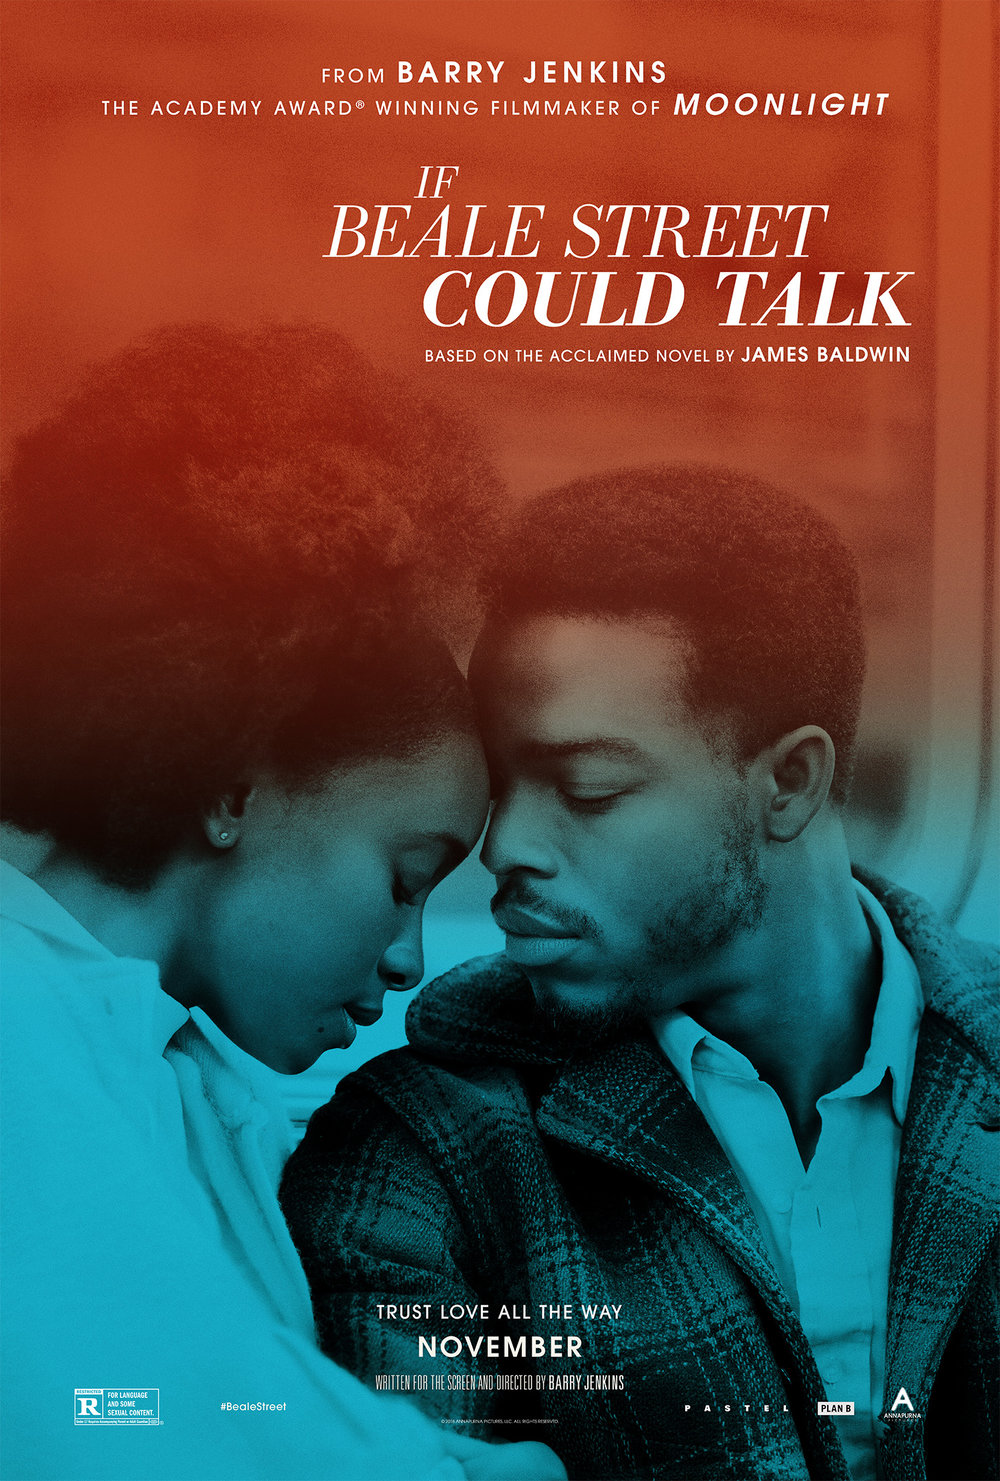 if-beale-street-could-talk-IfBealeStreetCouldTalk-Poster_rgb.jpg